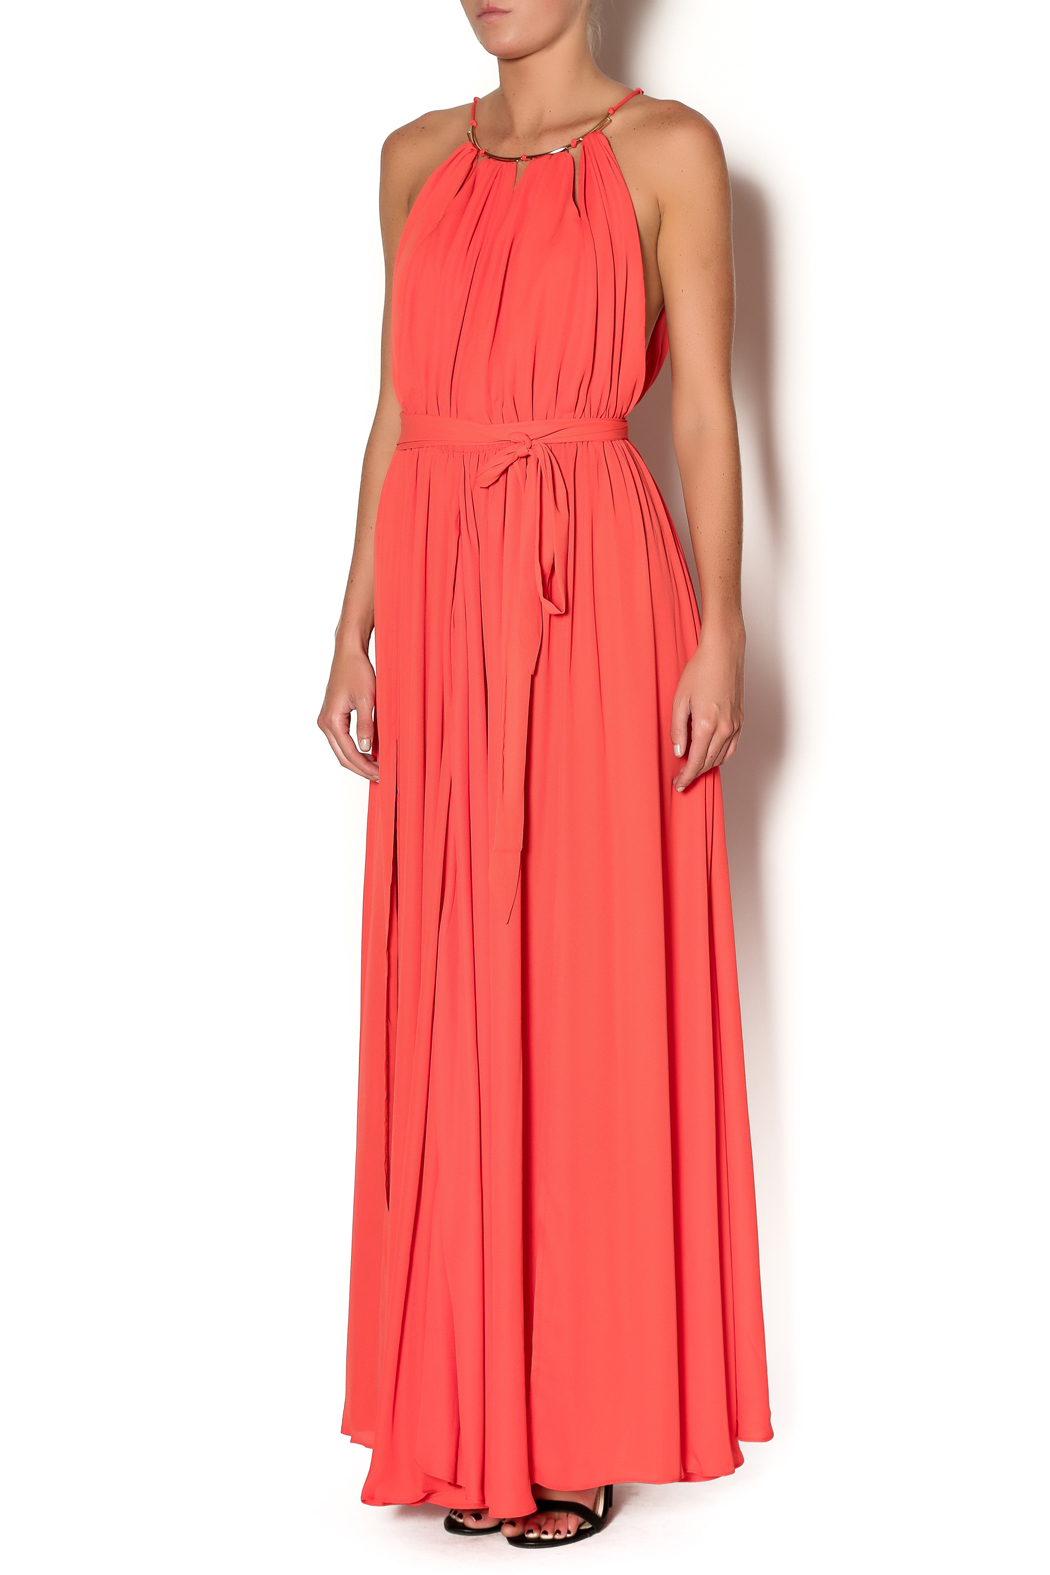 CQ By Caribbean Queen Maxi Gown from New York by Dor LDor